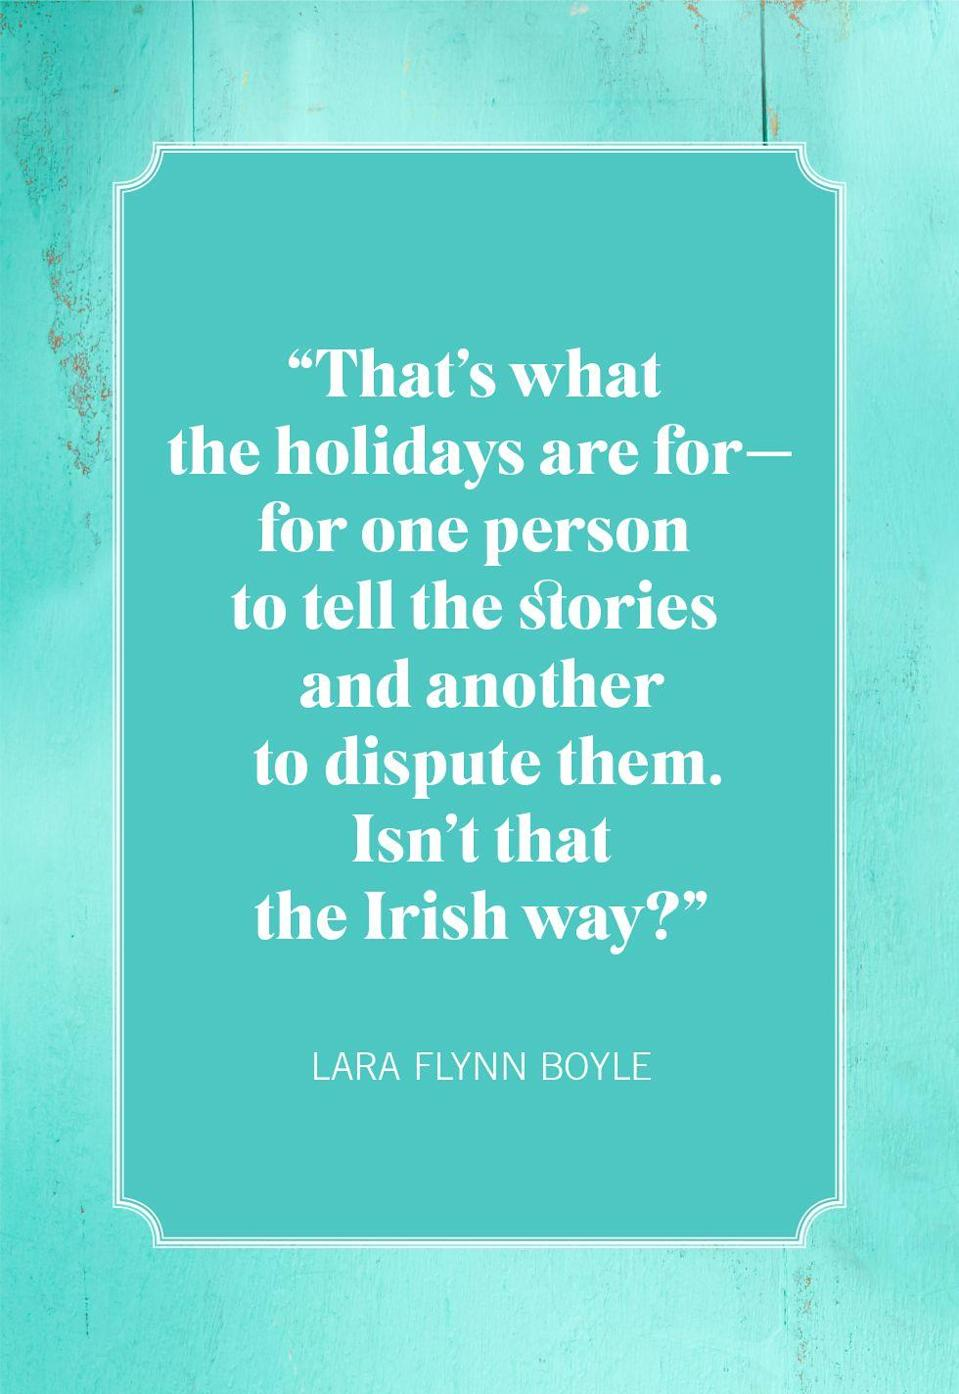 "<p>""That's what the holidays are for—for one person to tell the stories and another to dispute them. Isn't that the Irish way?""</p>"